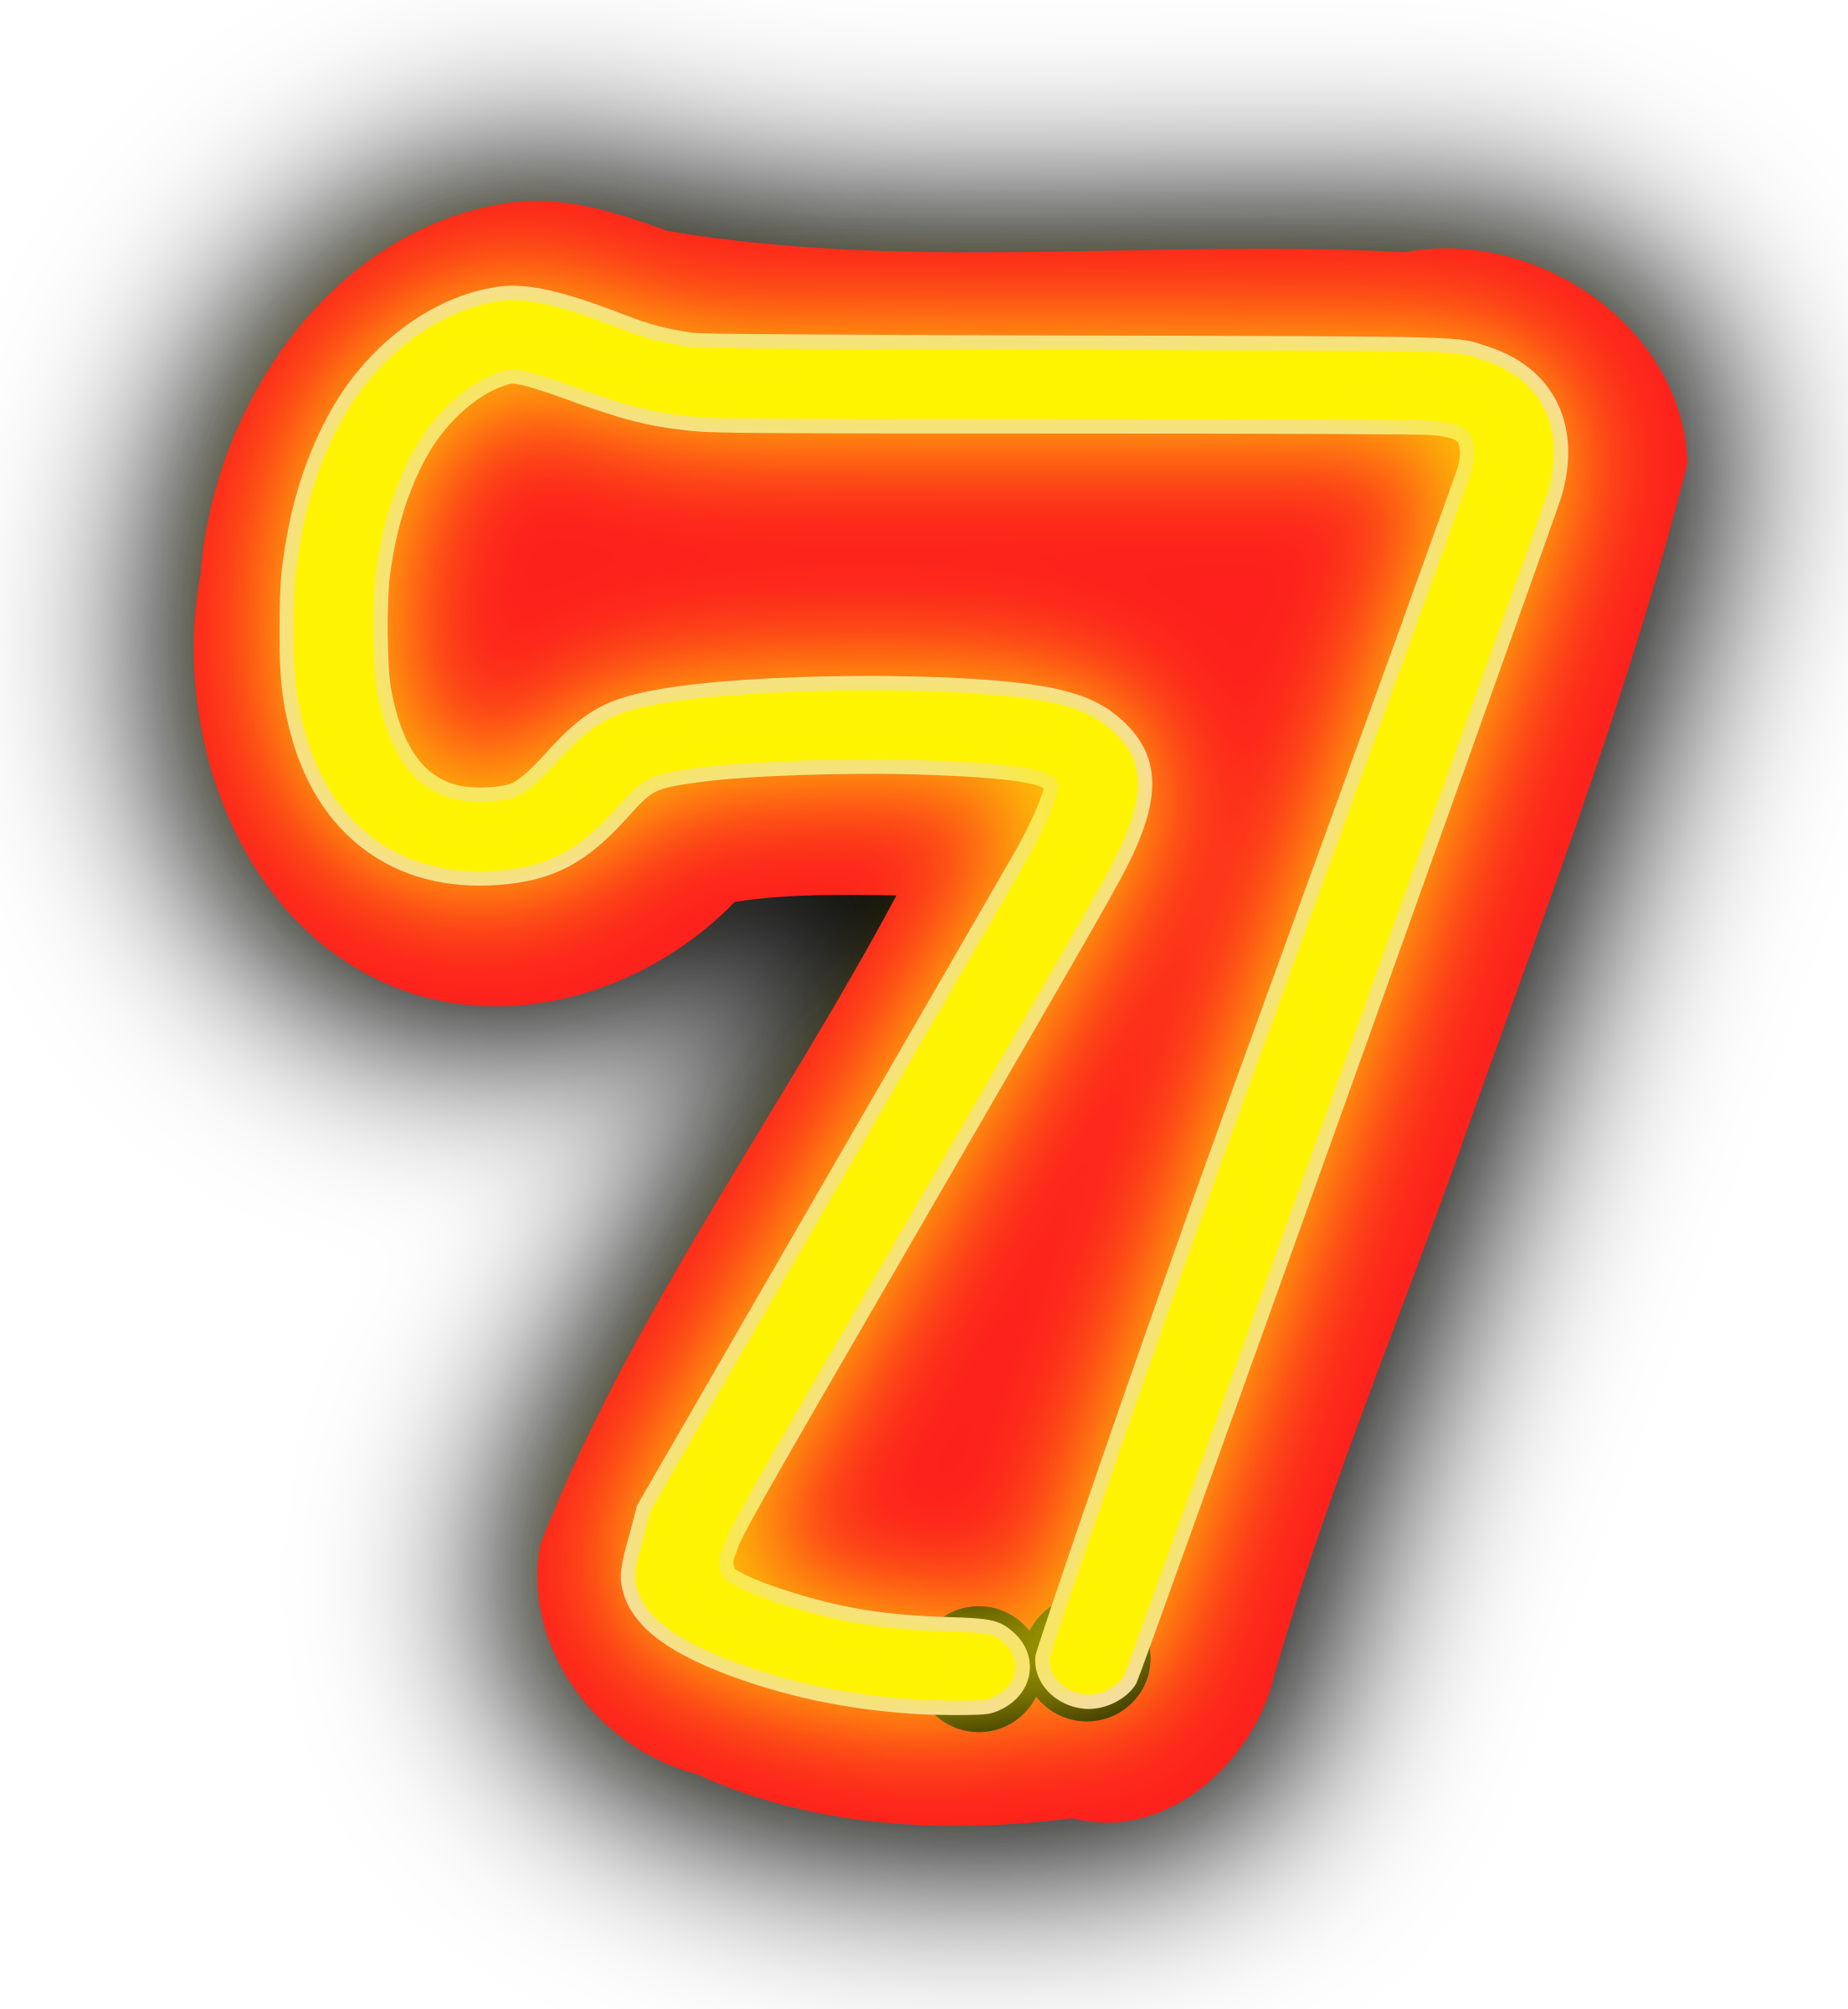 7 clipart number 7. Neon numerals big image